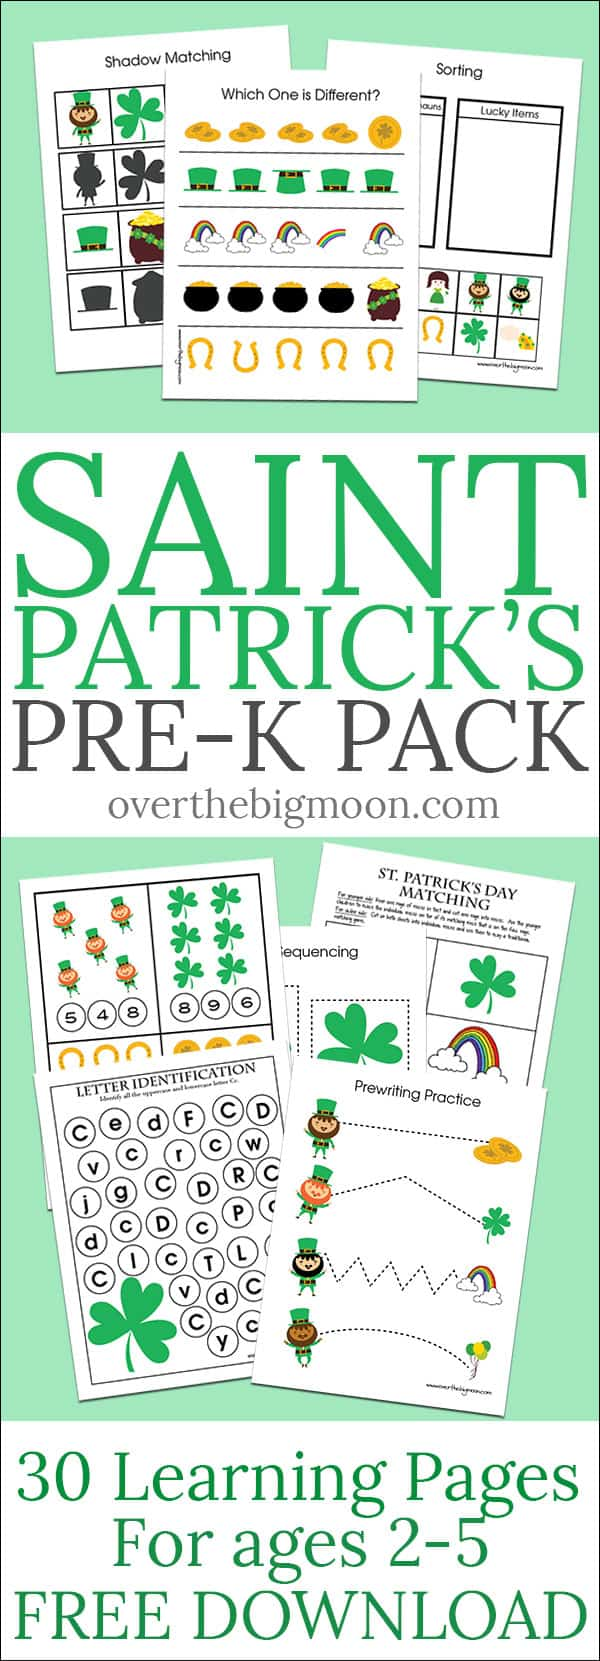 St. Patrick's Day Pre-K Pack - St. Patrick's Day activities for kids! 30 pages of FREE learning and fun for your toddlers this St. Patrick's Day! From overthebigmoon.com!